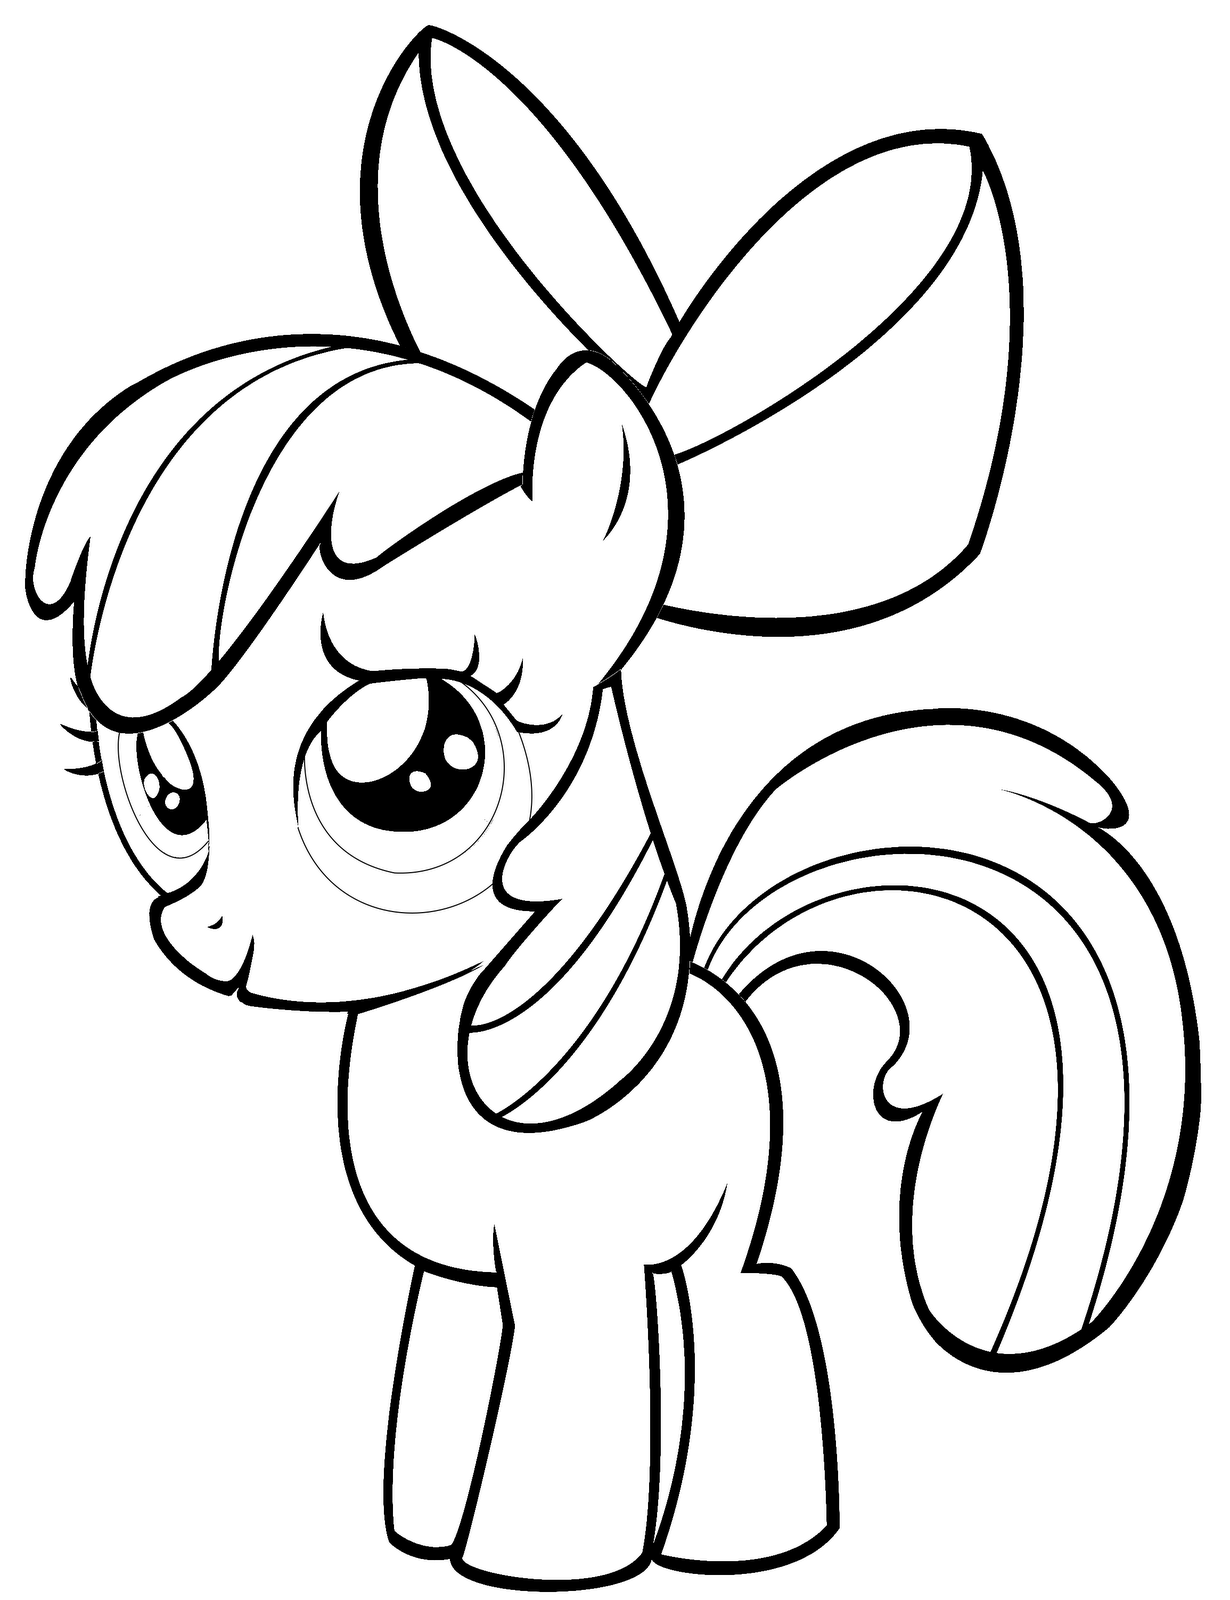 Drawn my little pony apple bloom Coloring Printable On My bloom